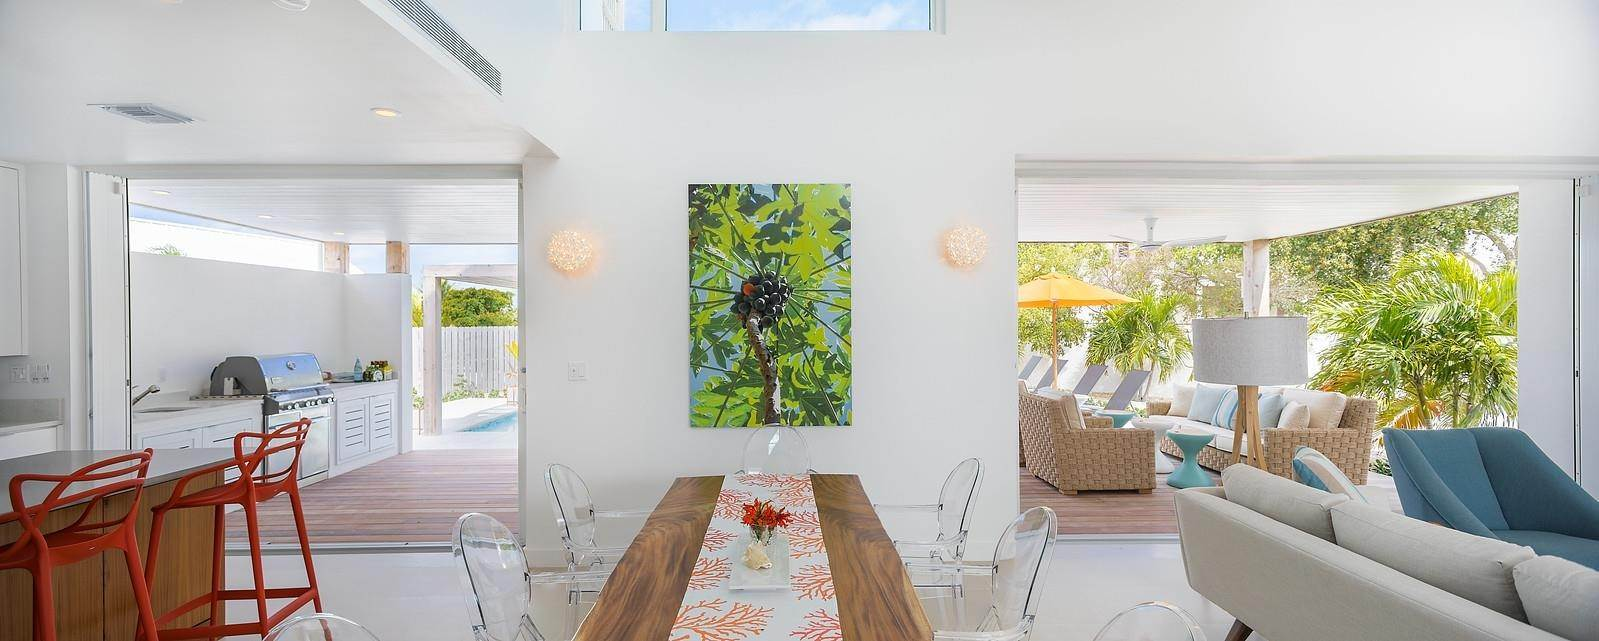 31. Single Family Home for Sale at Turnstone House Leeward, Providenciales,TKCA1ZZ Turks And Caicos Islands